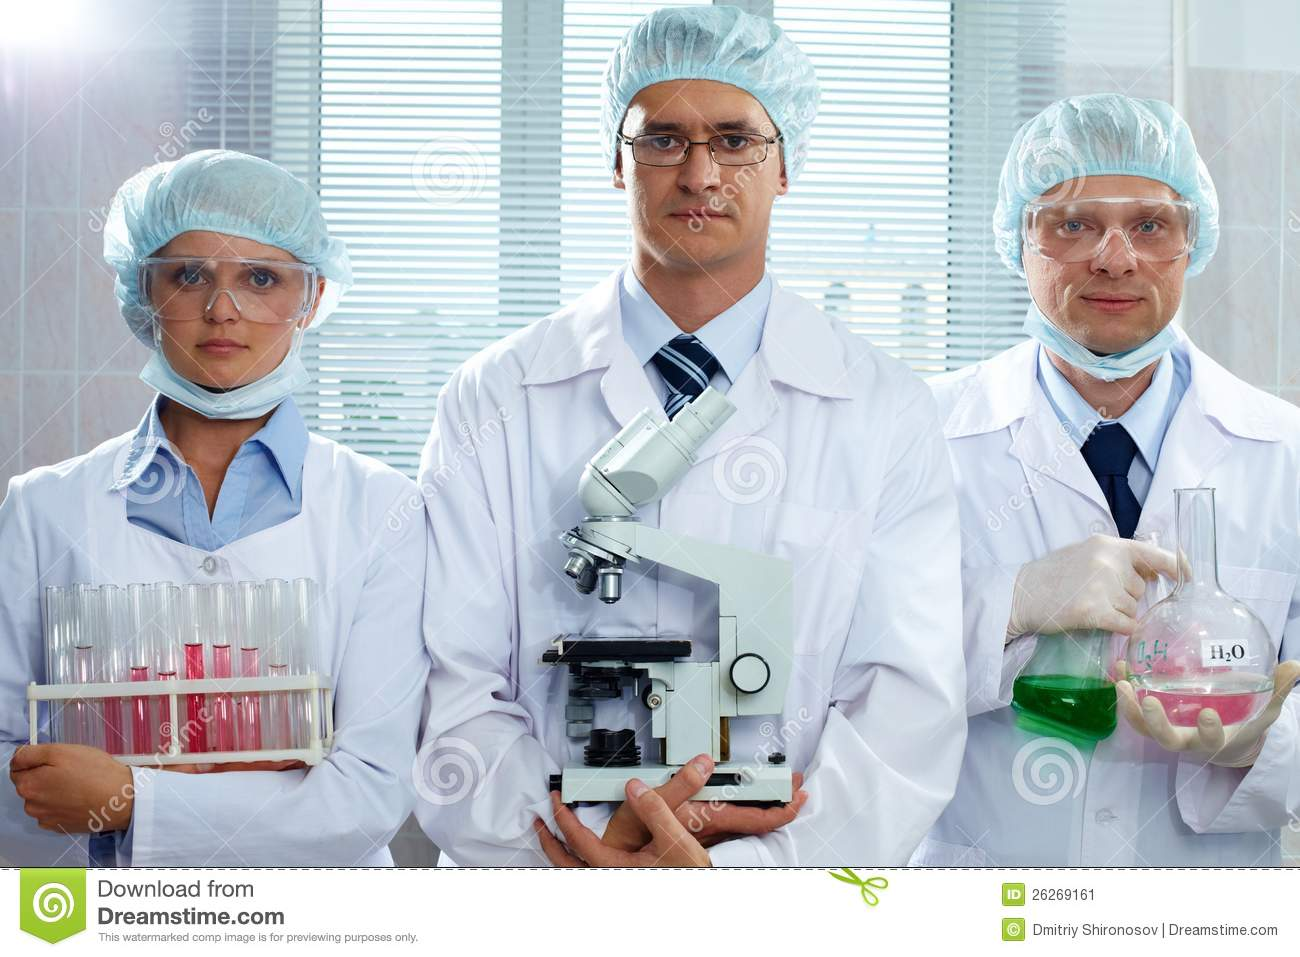 scientists serious lab renter natural holding camera equipment looking three dreamstime